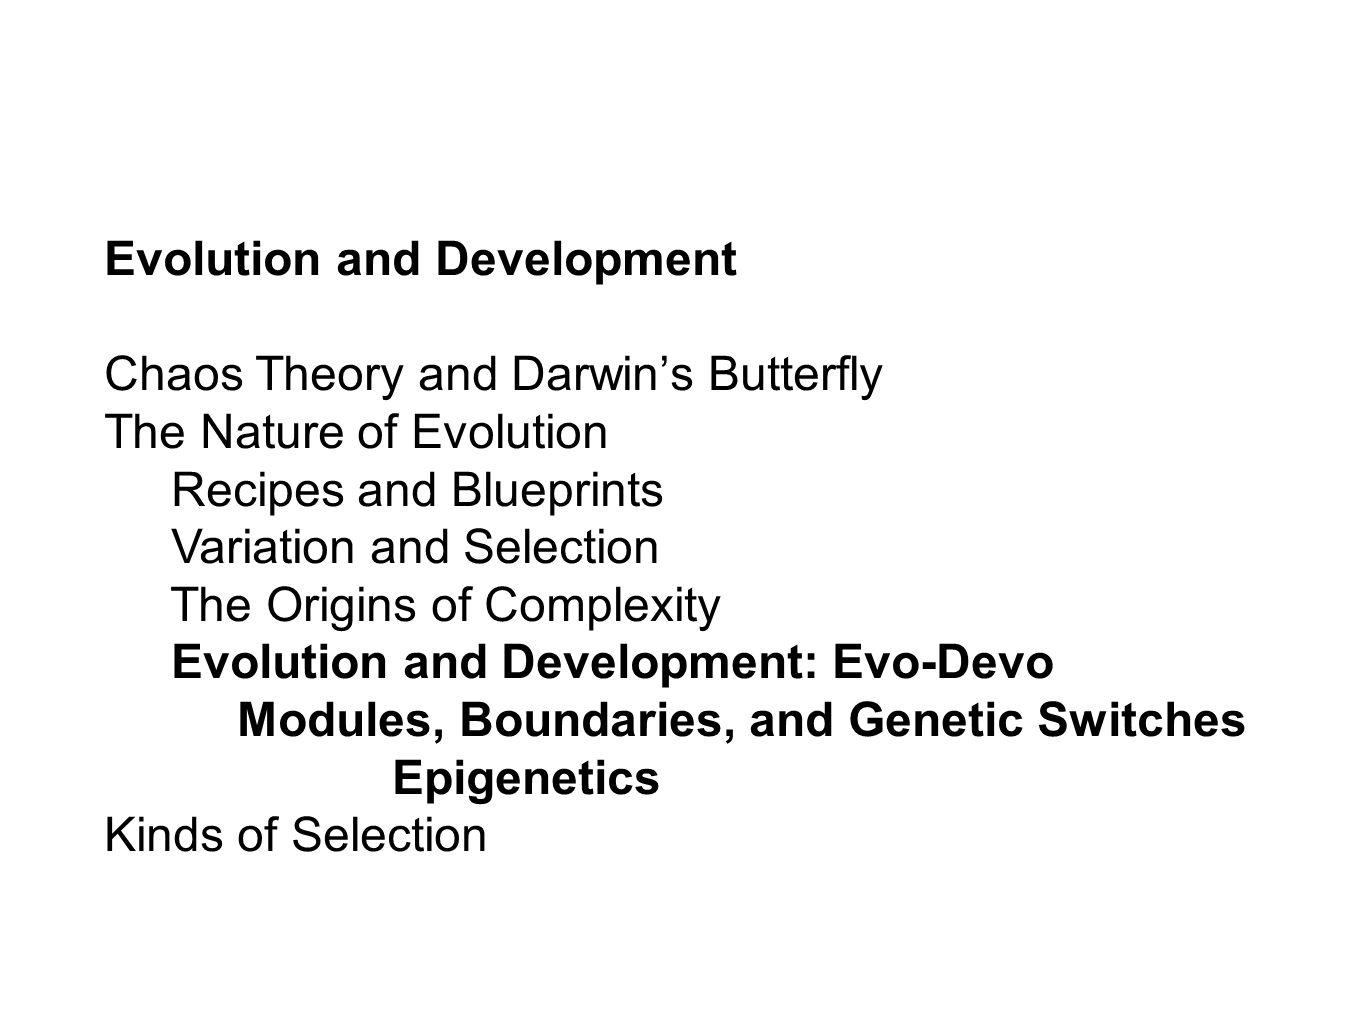 Evolution and Development Chaos Theory and Darwins Butterfly The Nature of Evolution Recipes and Blueprints Variation and Selection The Origins of Complexity Evolution and Development: Evo-Devo Modules, Boundaries, and Genetic Switches Epigenetics Kinds of Selection